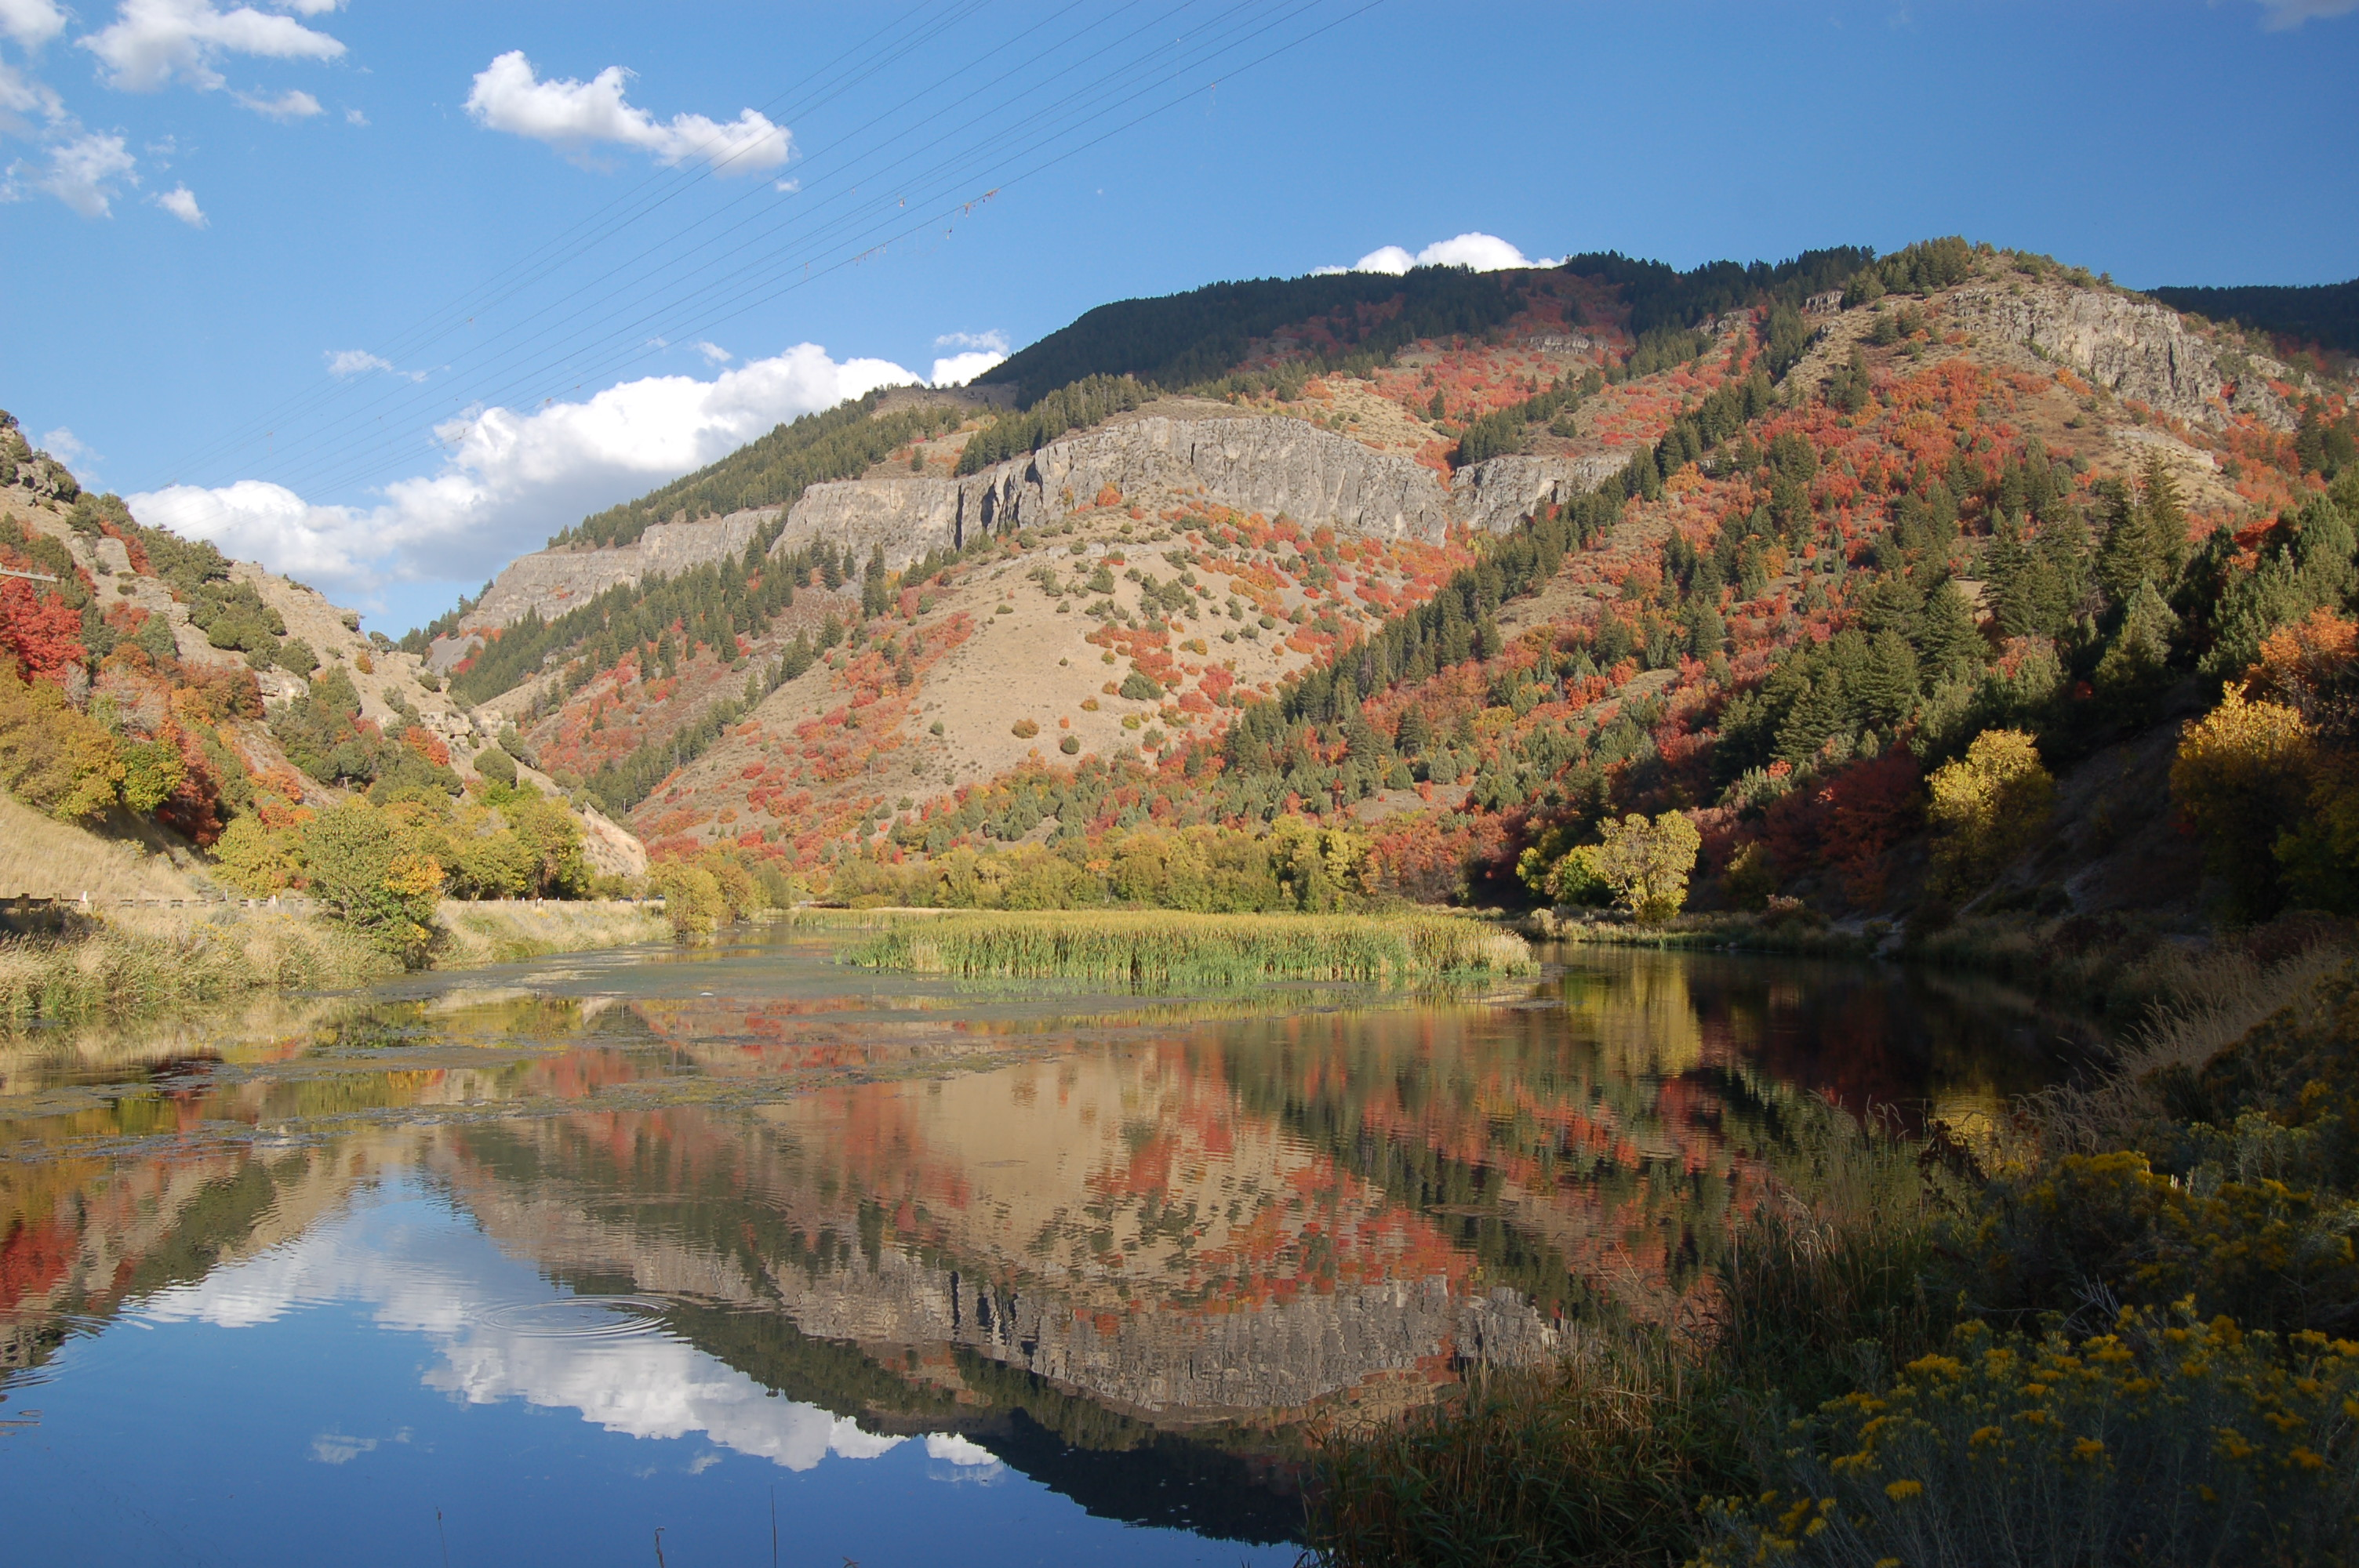 Logan Canyon Scenic Byway - Photos | America's Byways